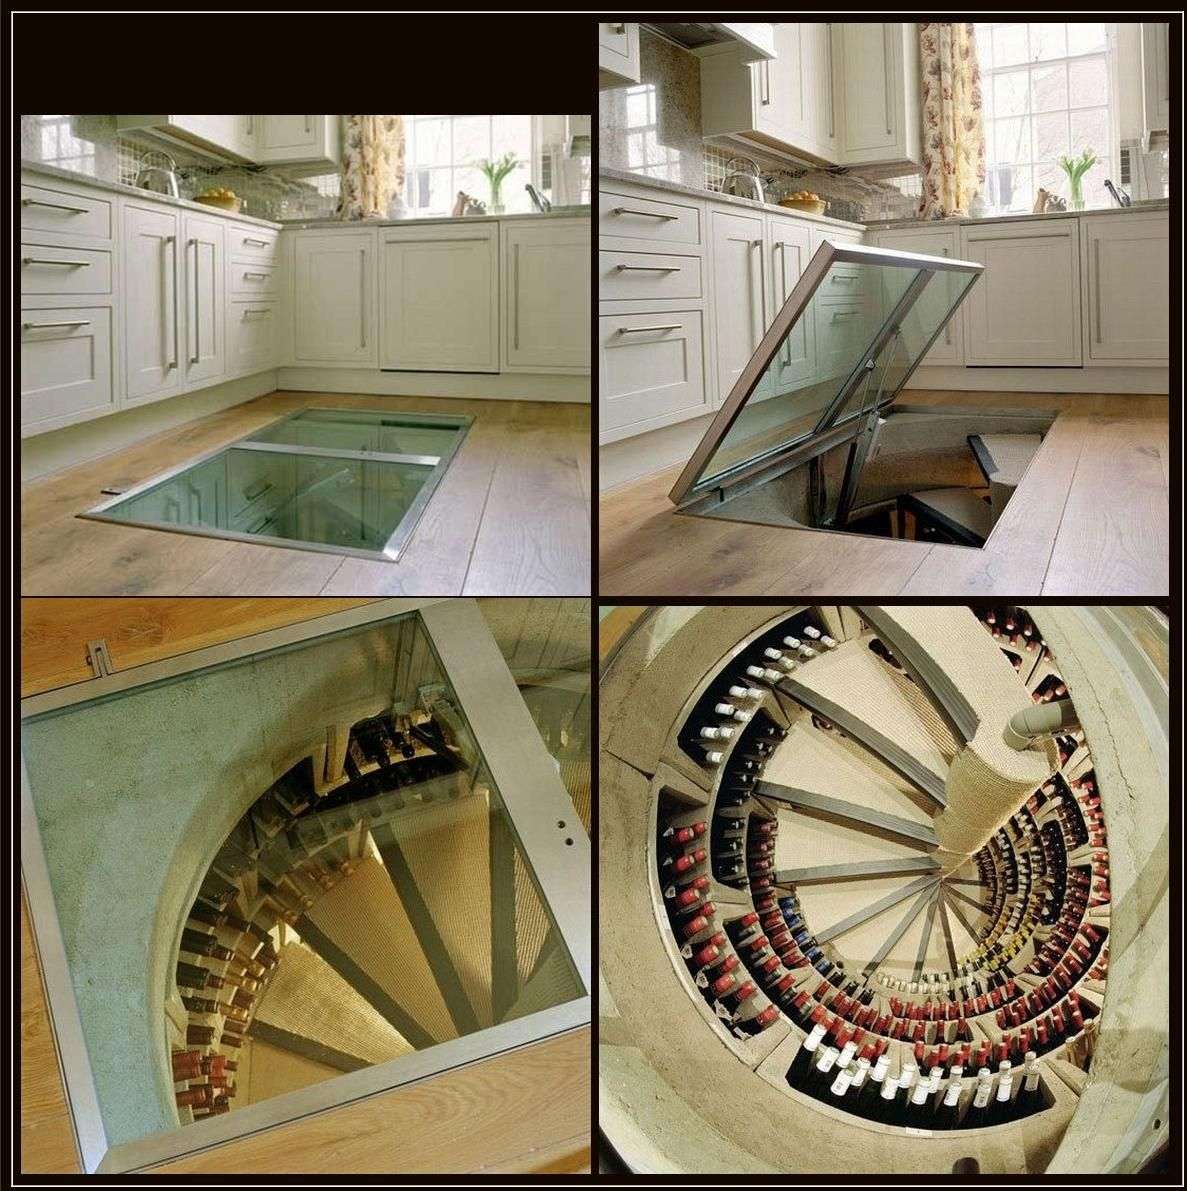 Didn T Know I Needed An Underground Spiral Wine Cellar Until Now How Else Could One Without Just Walked Down Stairs In Your Kitchen